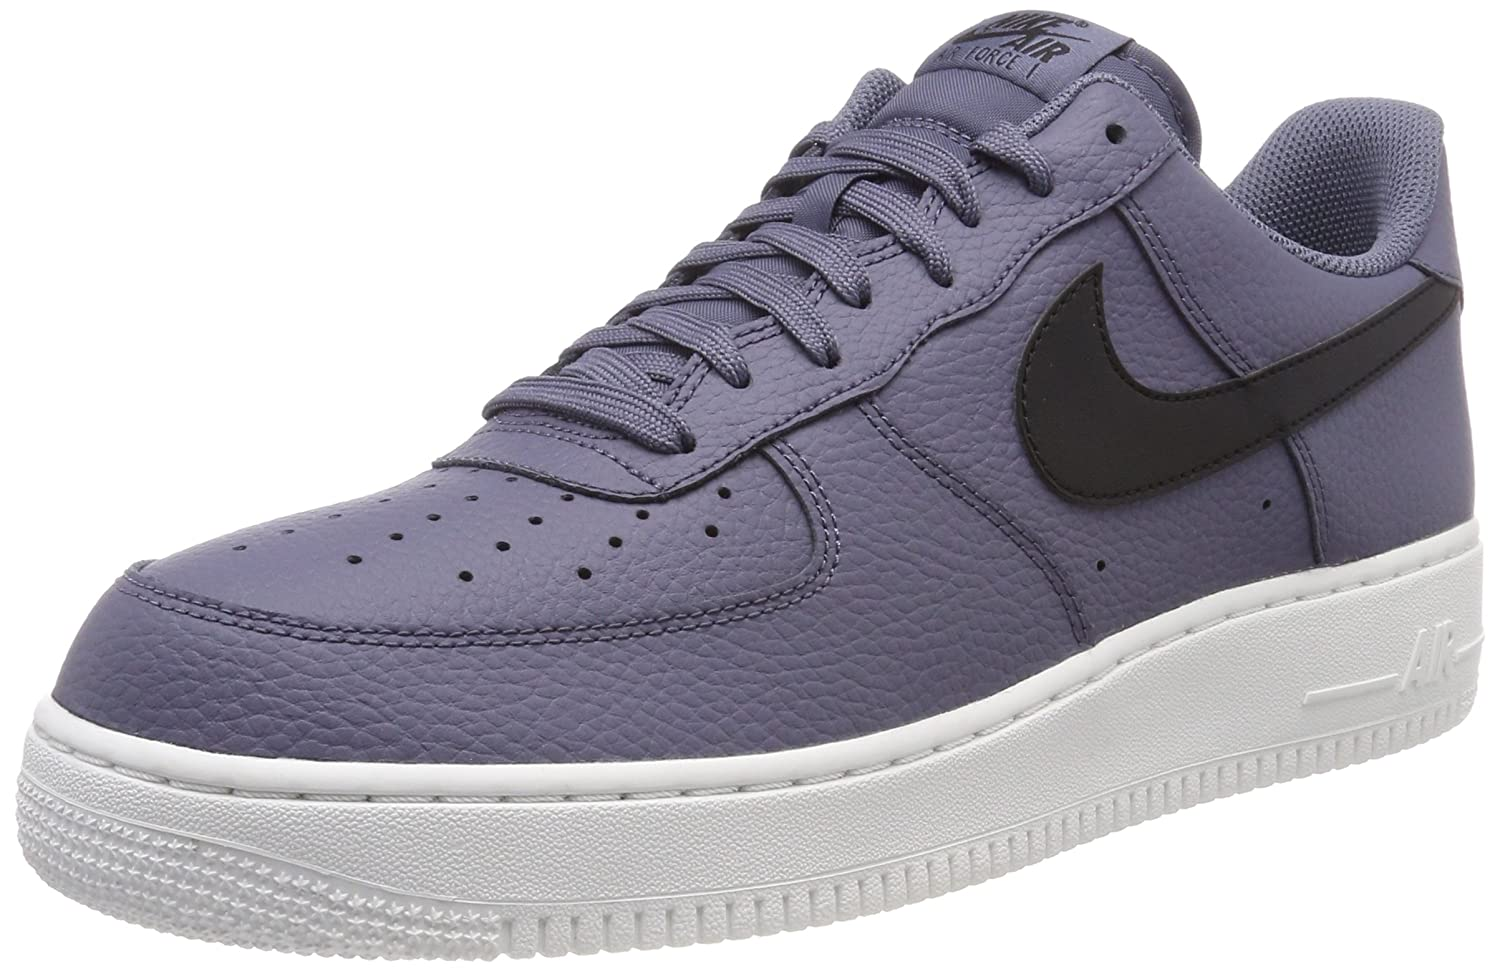 Nike Herren Air Force 1 07 Gymnastikschuhe, Light Carbon/Black  39 EU|Grau (Light Carbon/Black/Summit White 006)